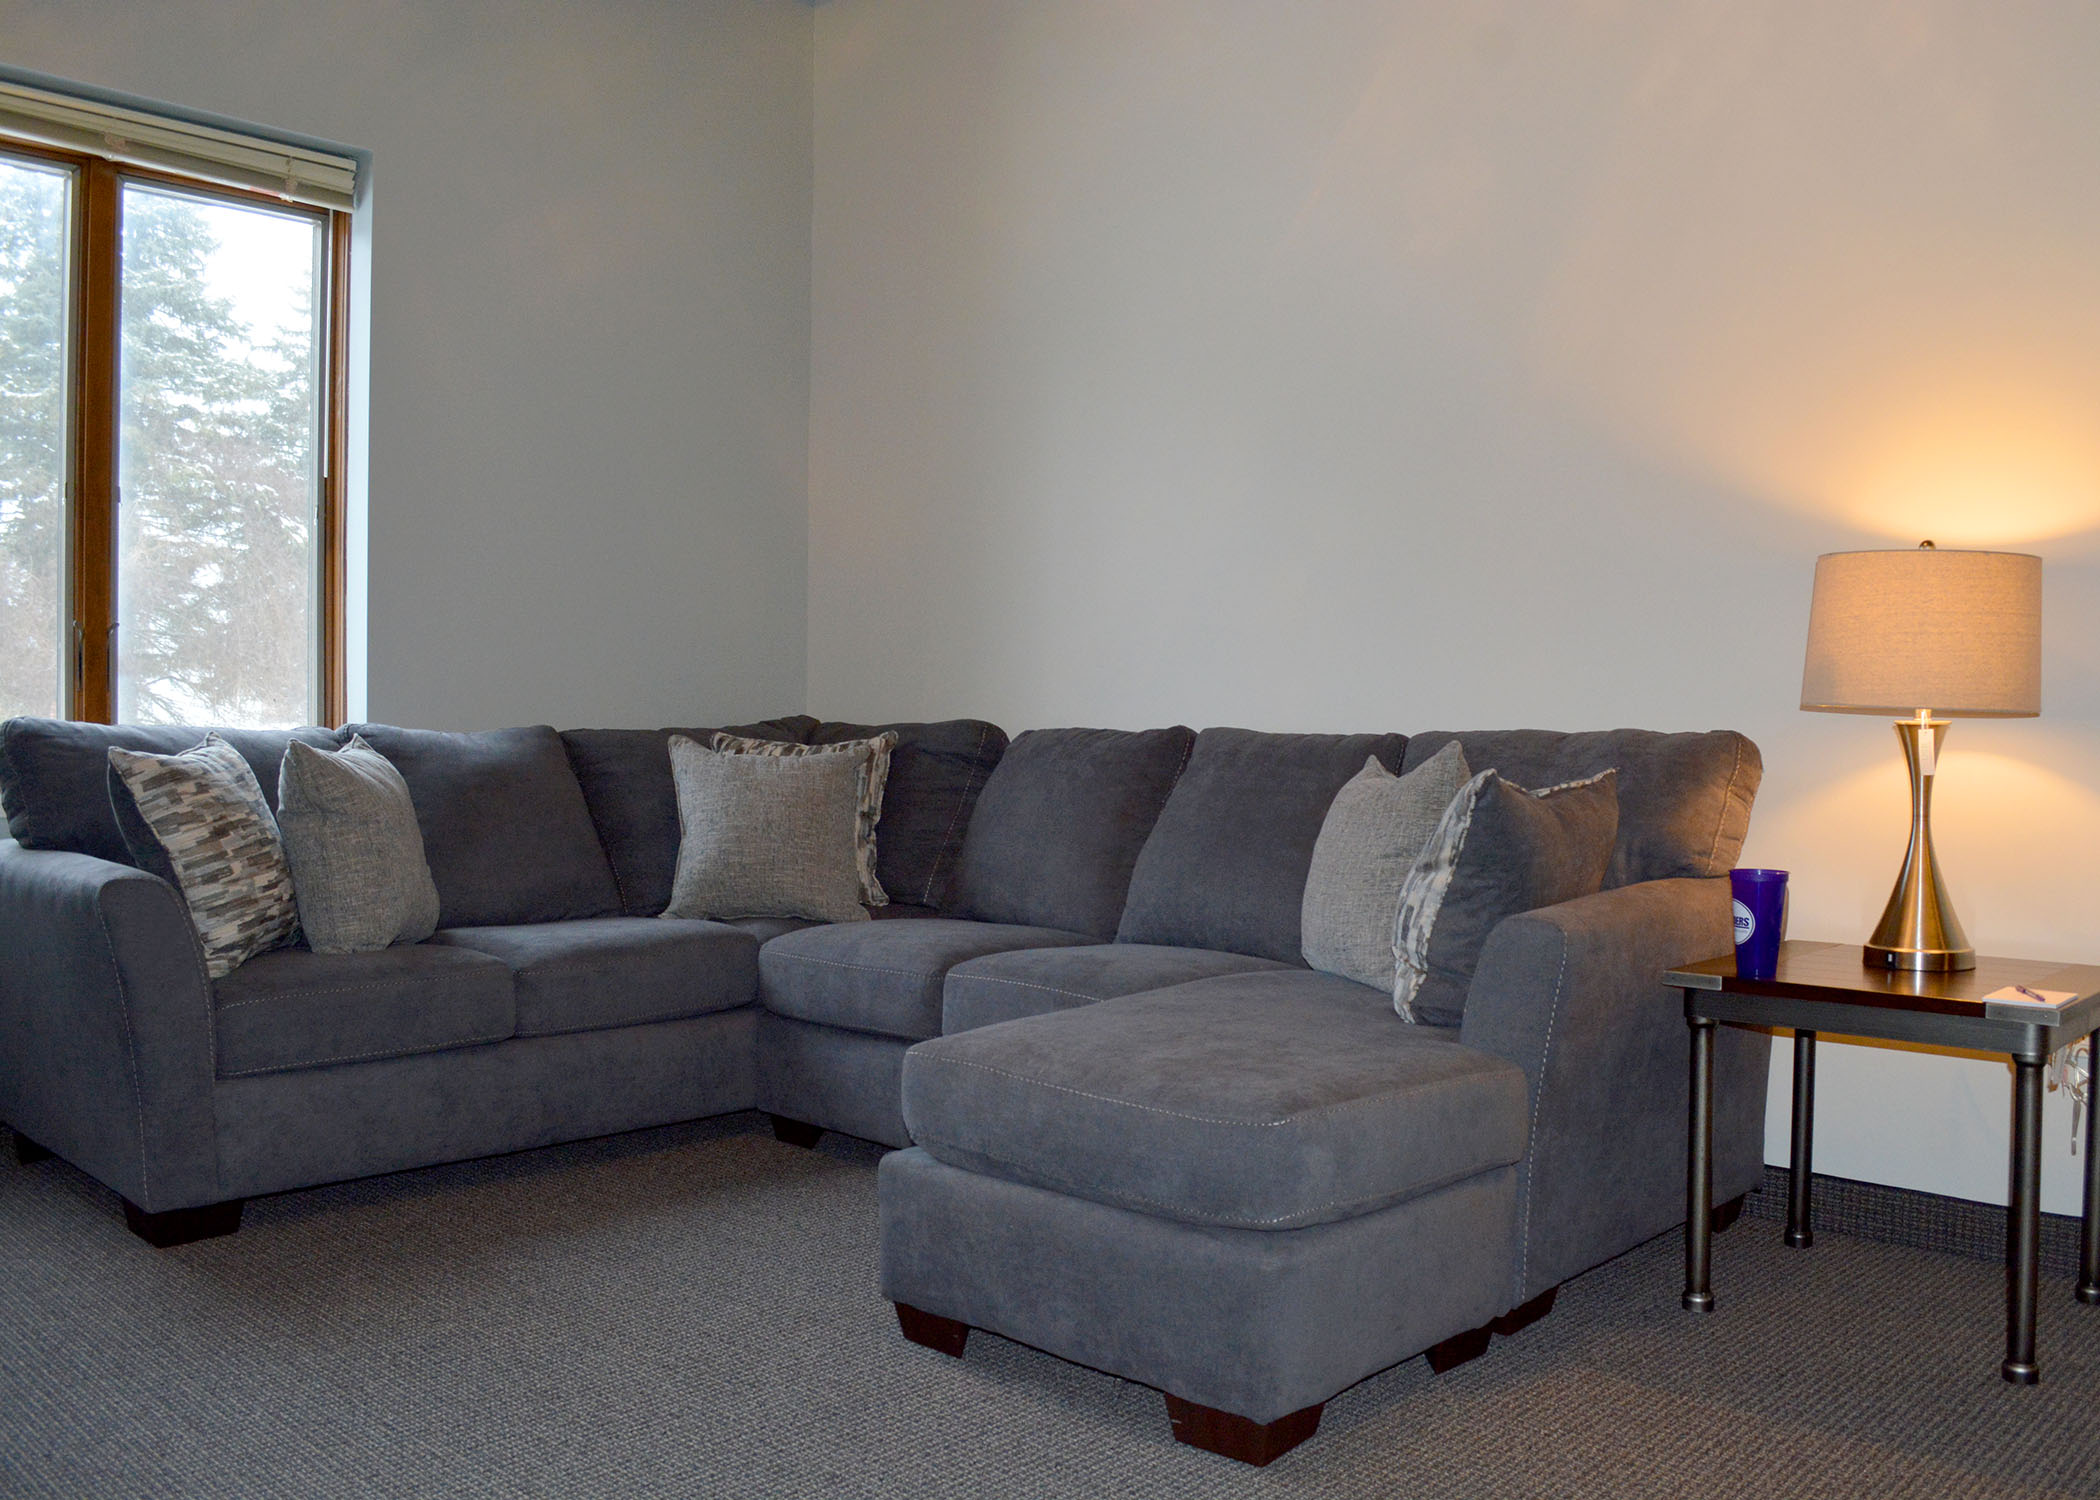 Interior image of the Glamorgan Apartments.